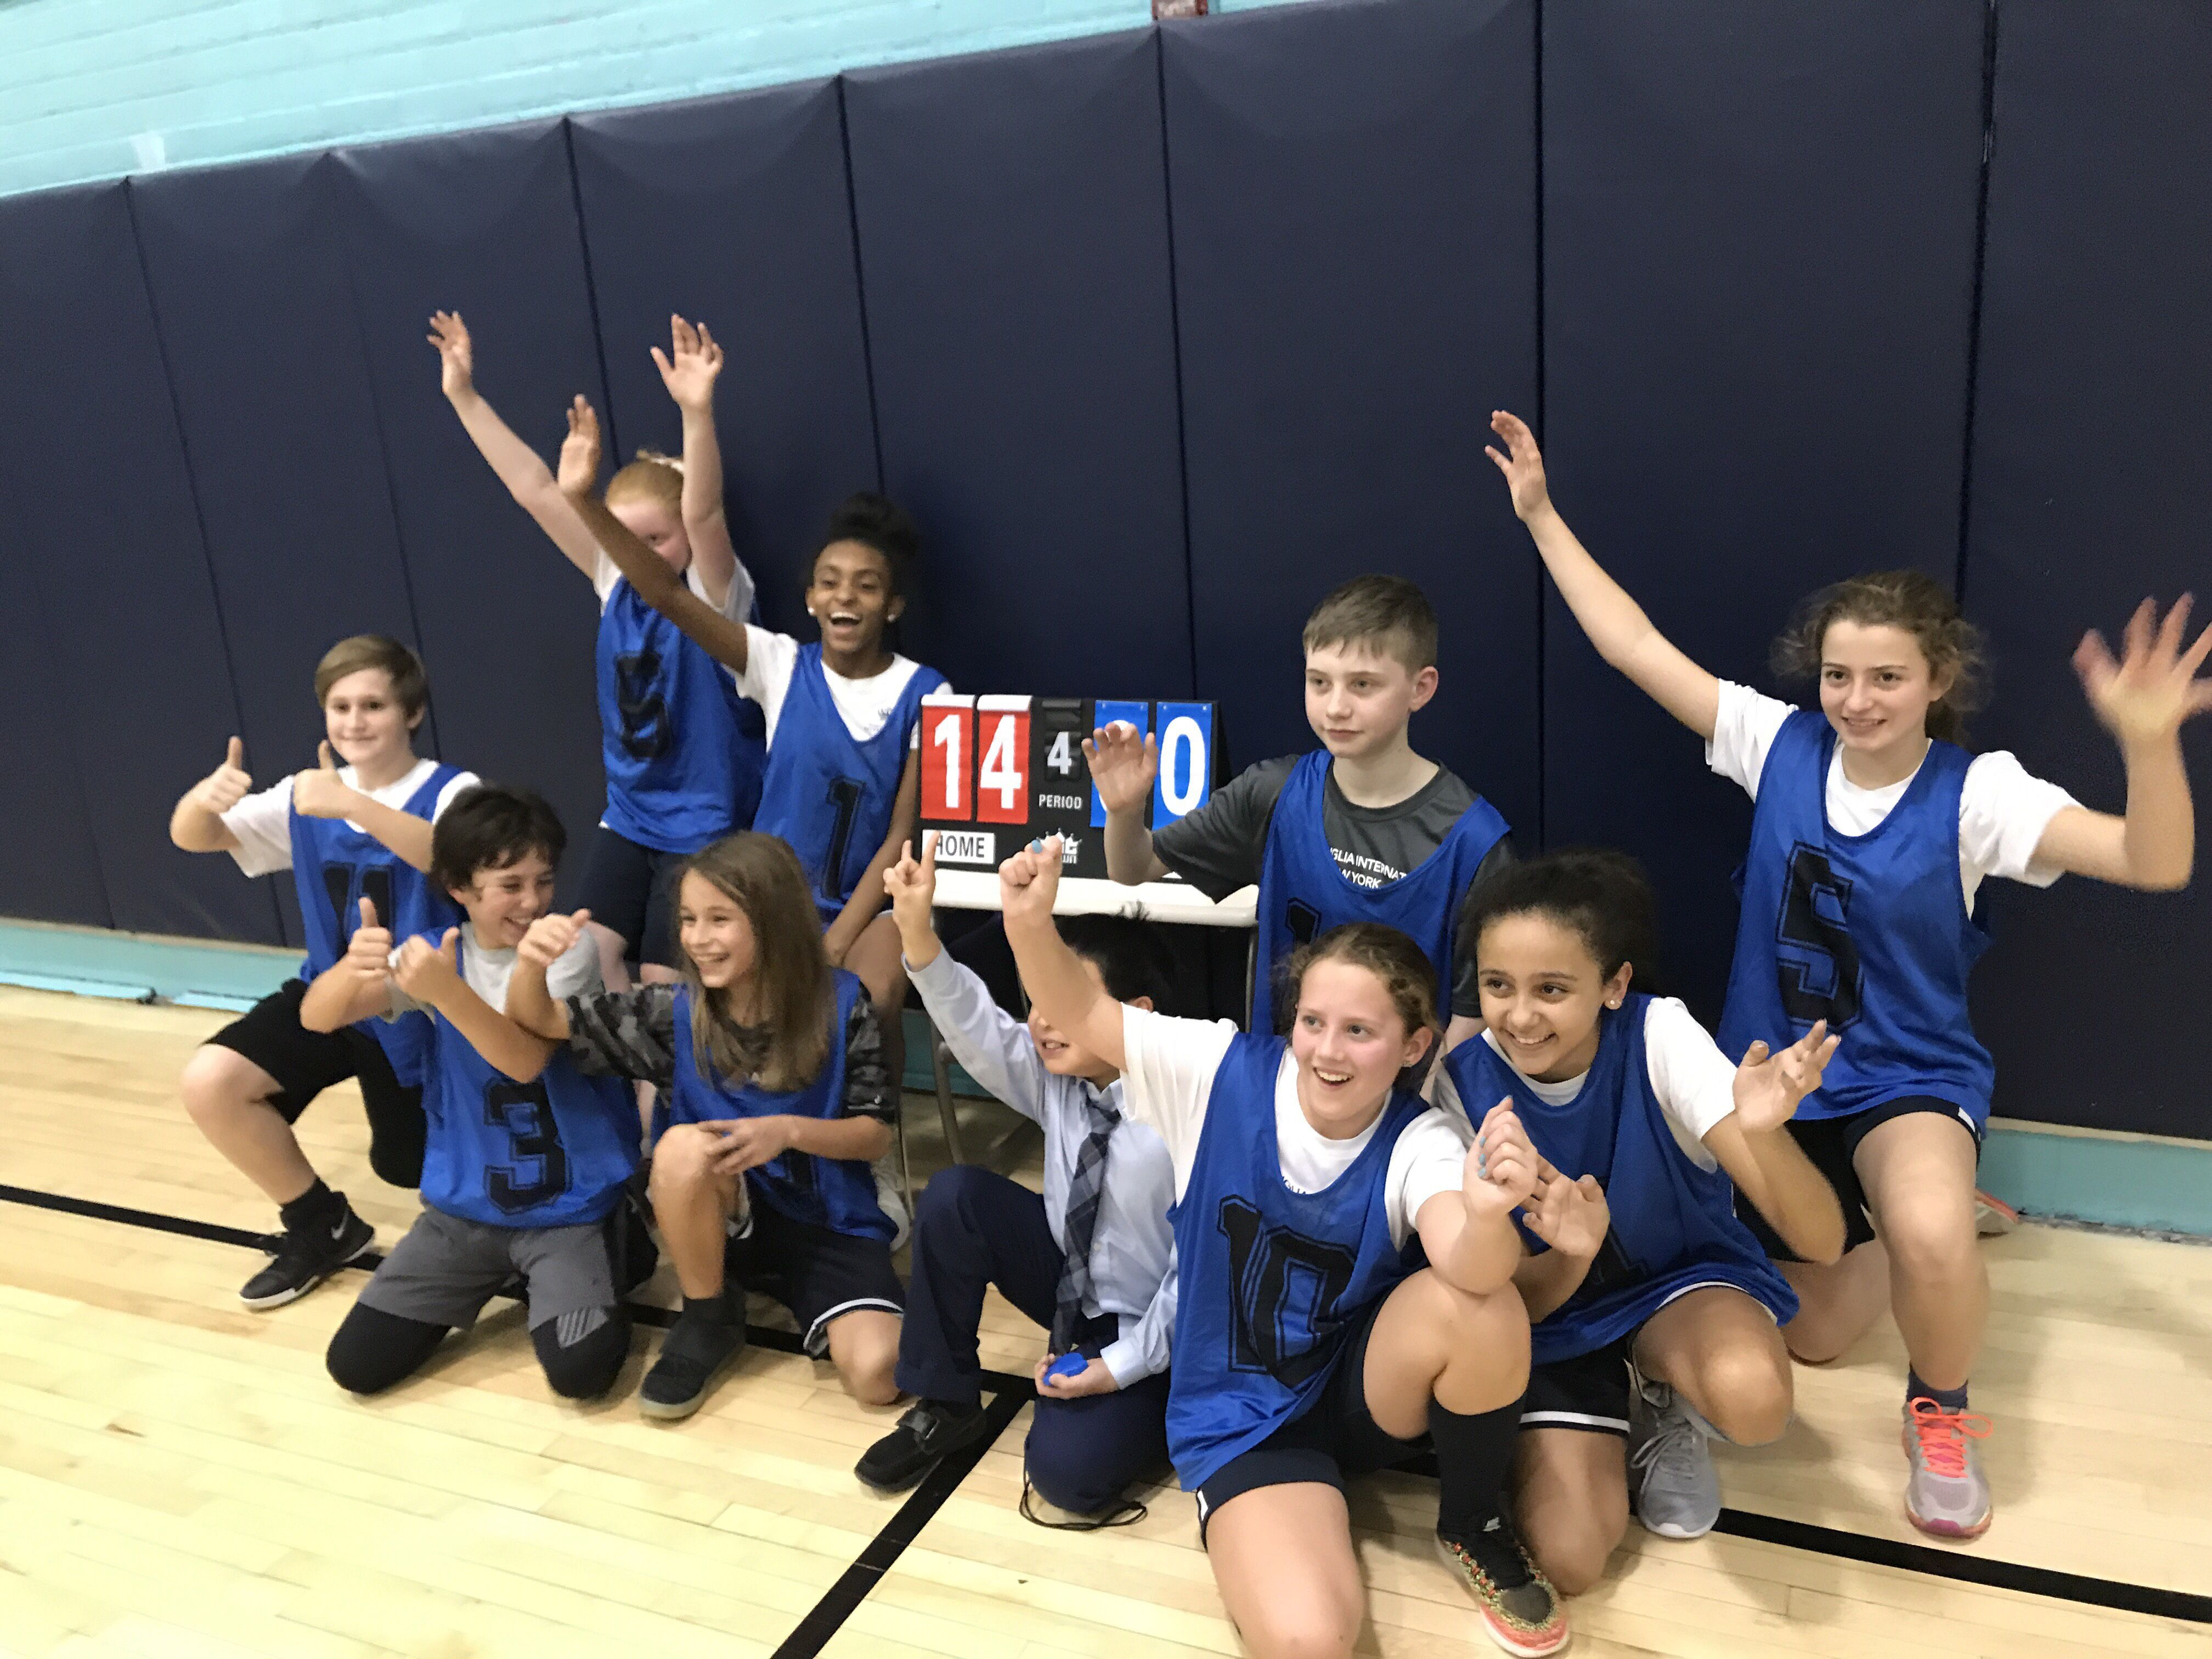 Congratulations to the NAISNY U12 basketball team for